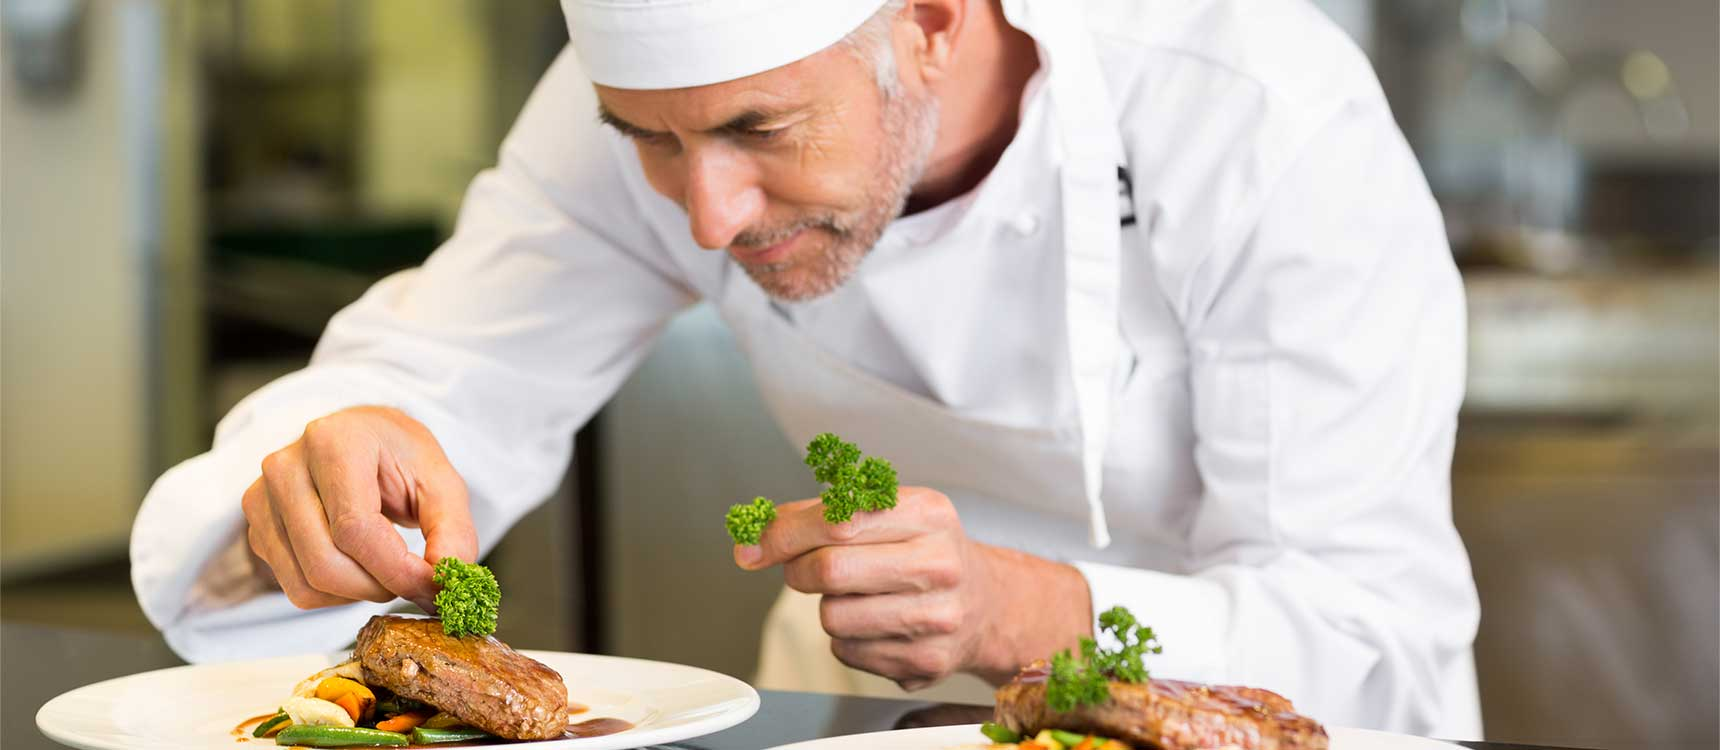 private chef job